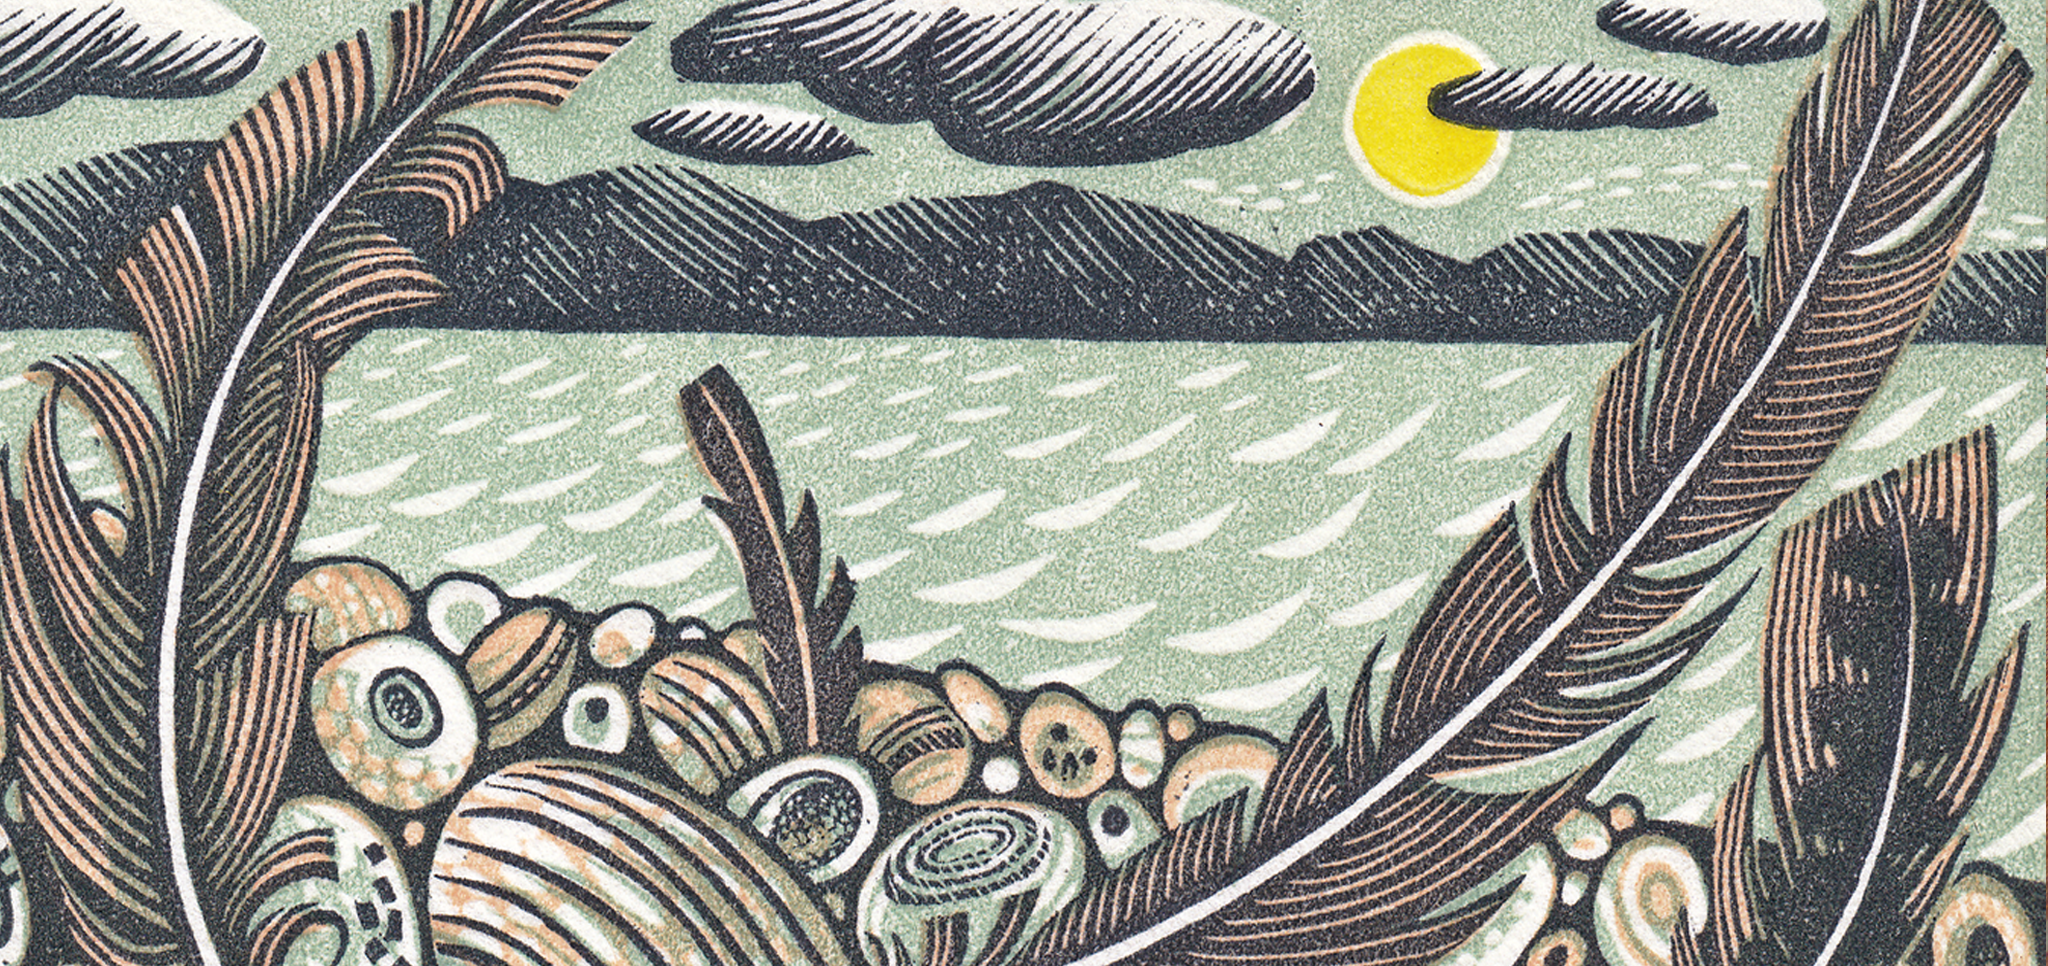 Angie Lewin. Tideline Feathers (detail)